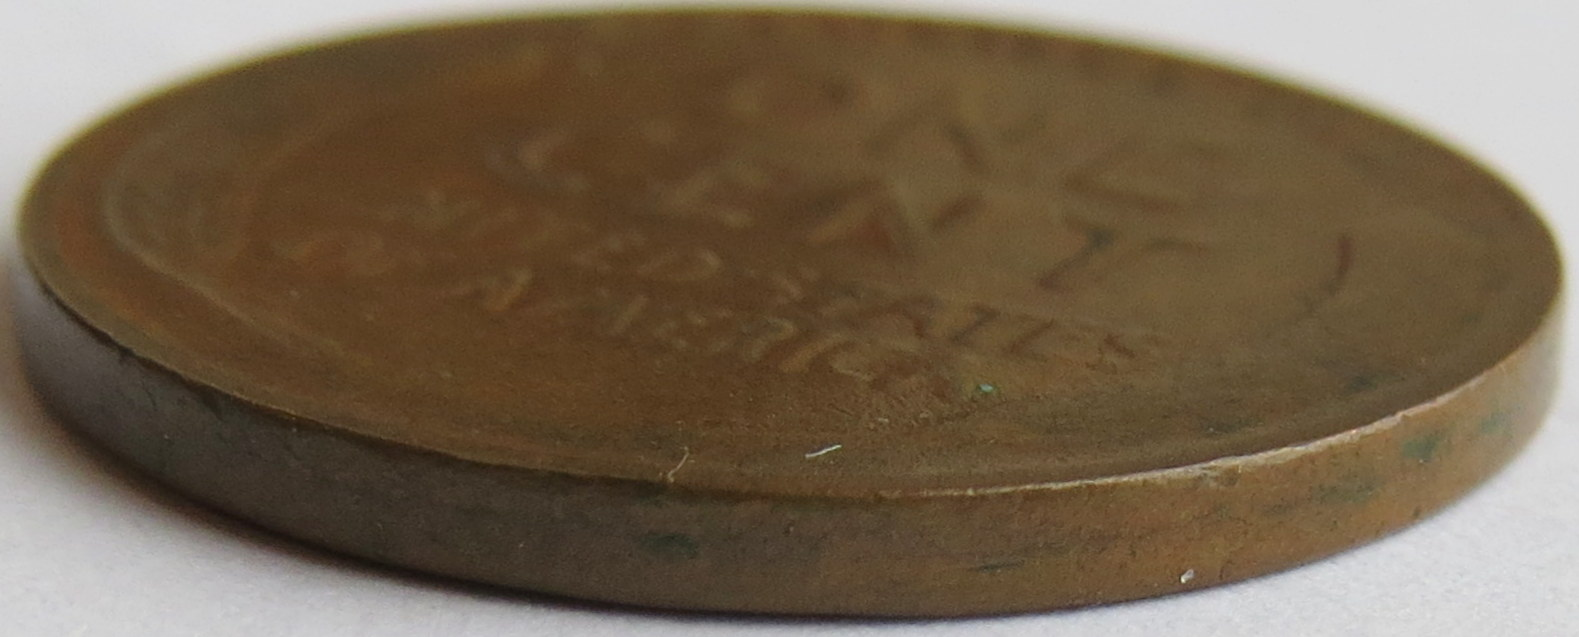 how to tell if a 1943 penny is bronze